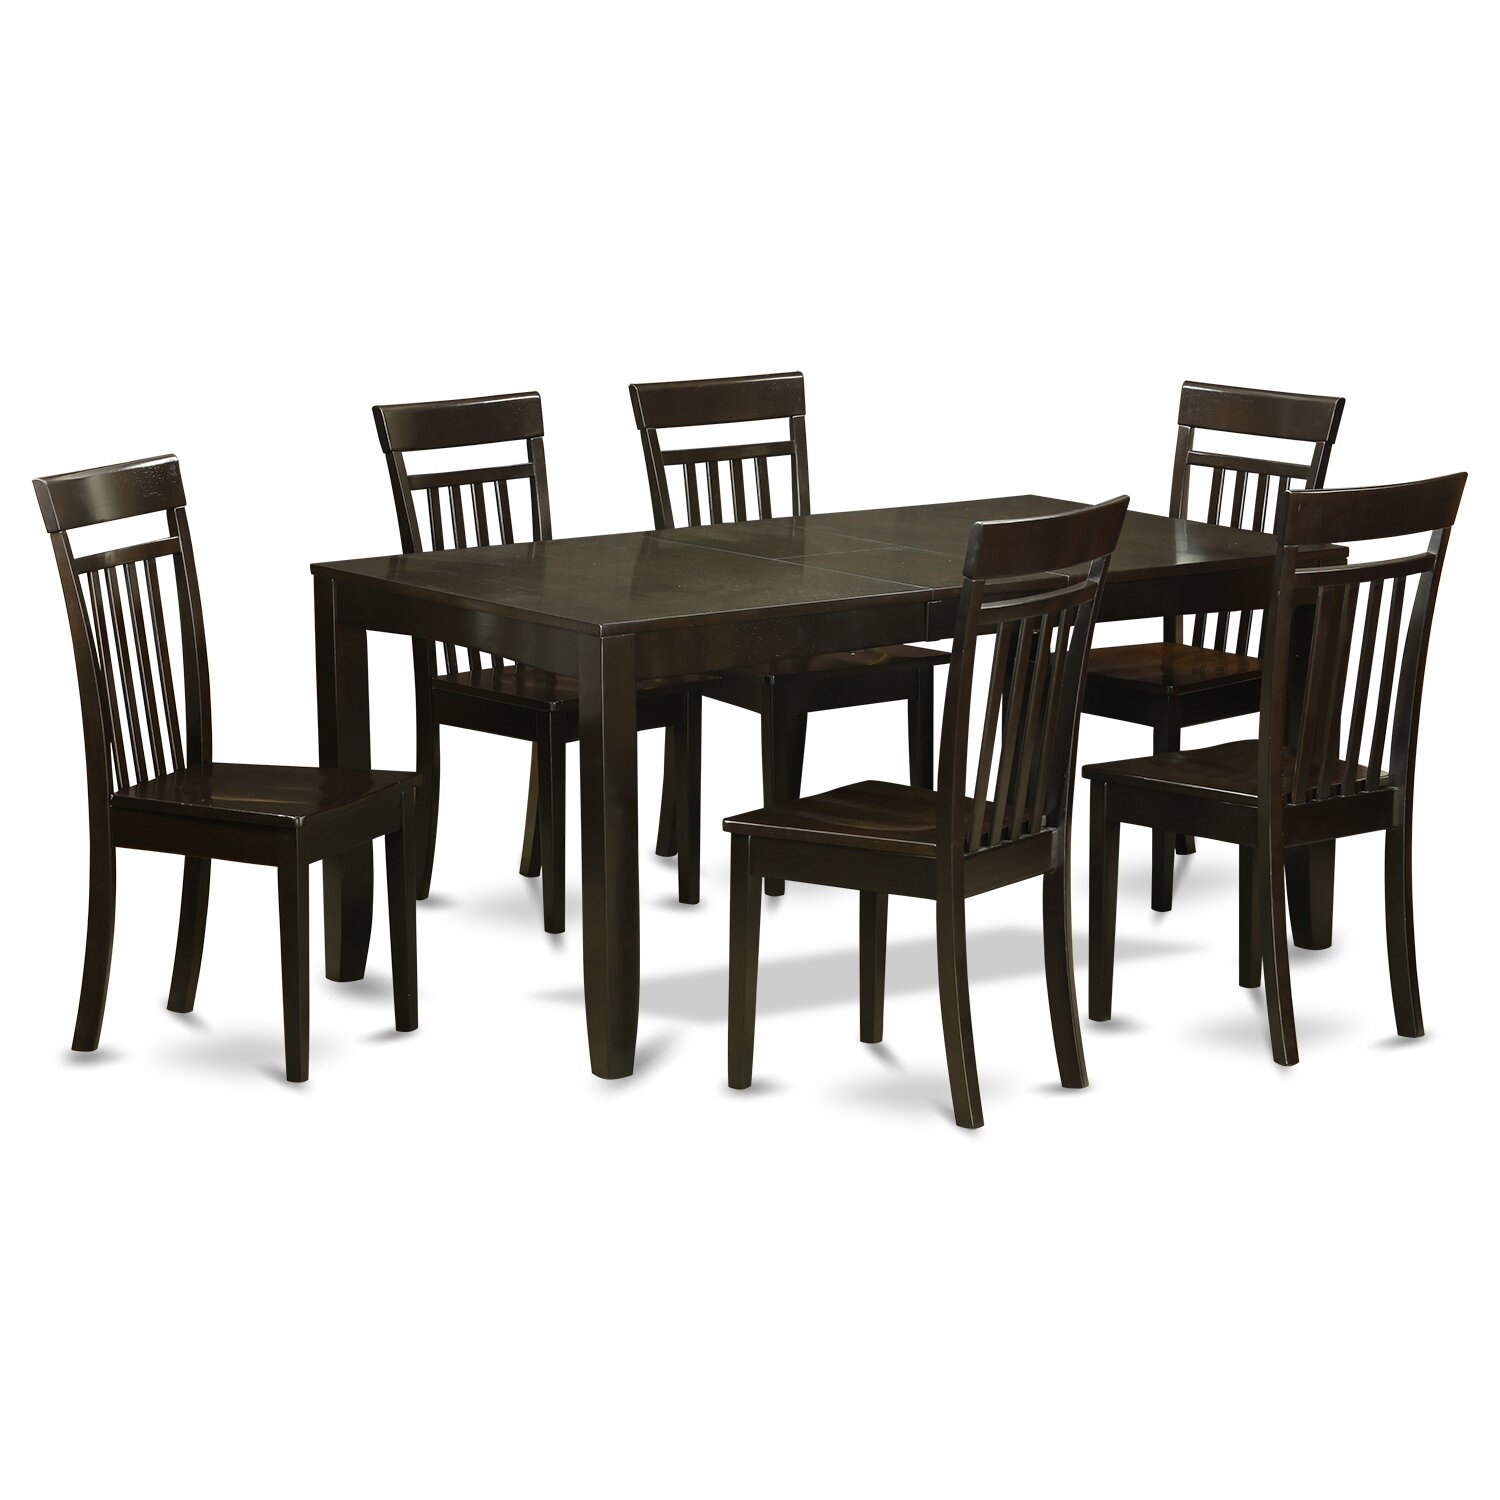 East west lynfield 7 piece dining set wayfair for 7 pc dining room set